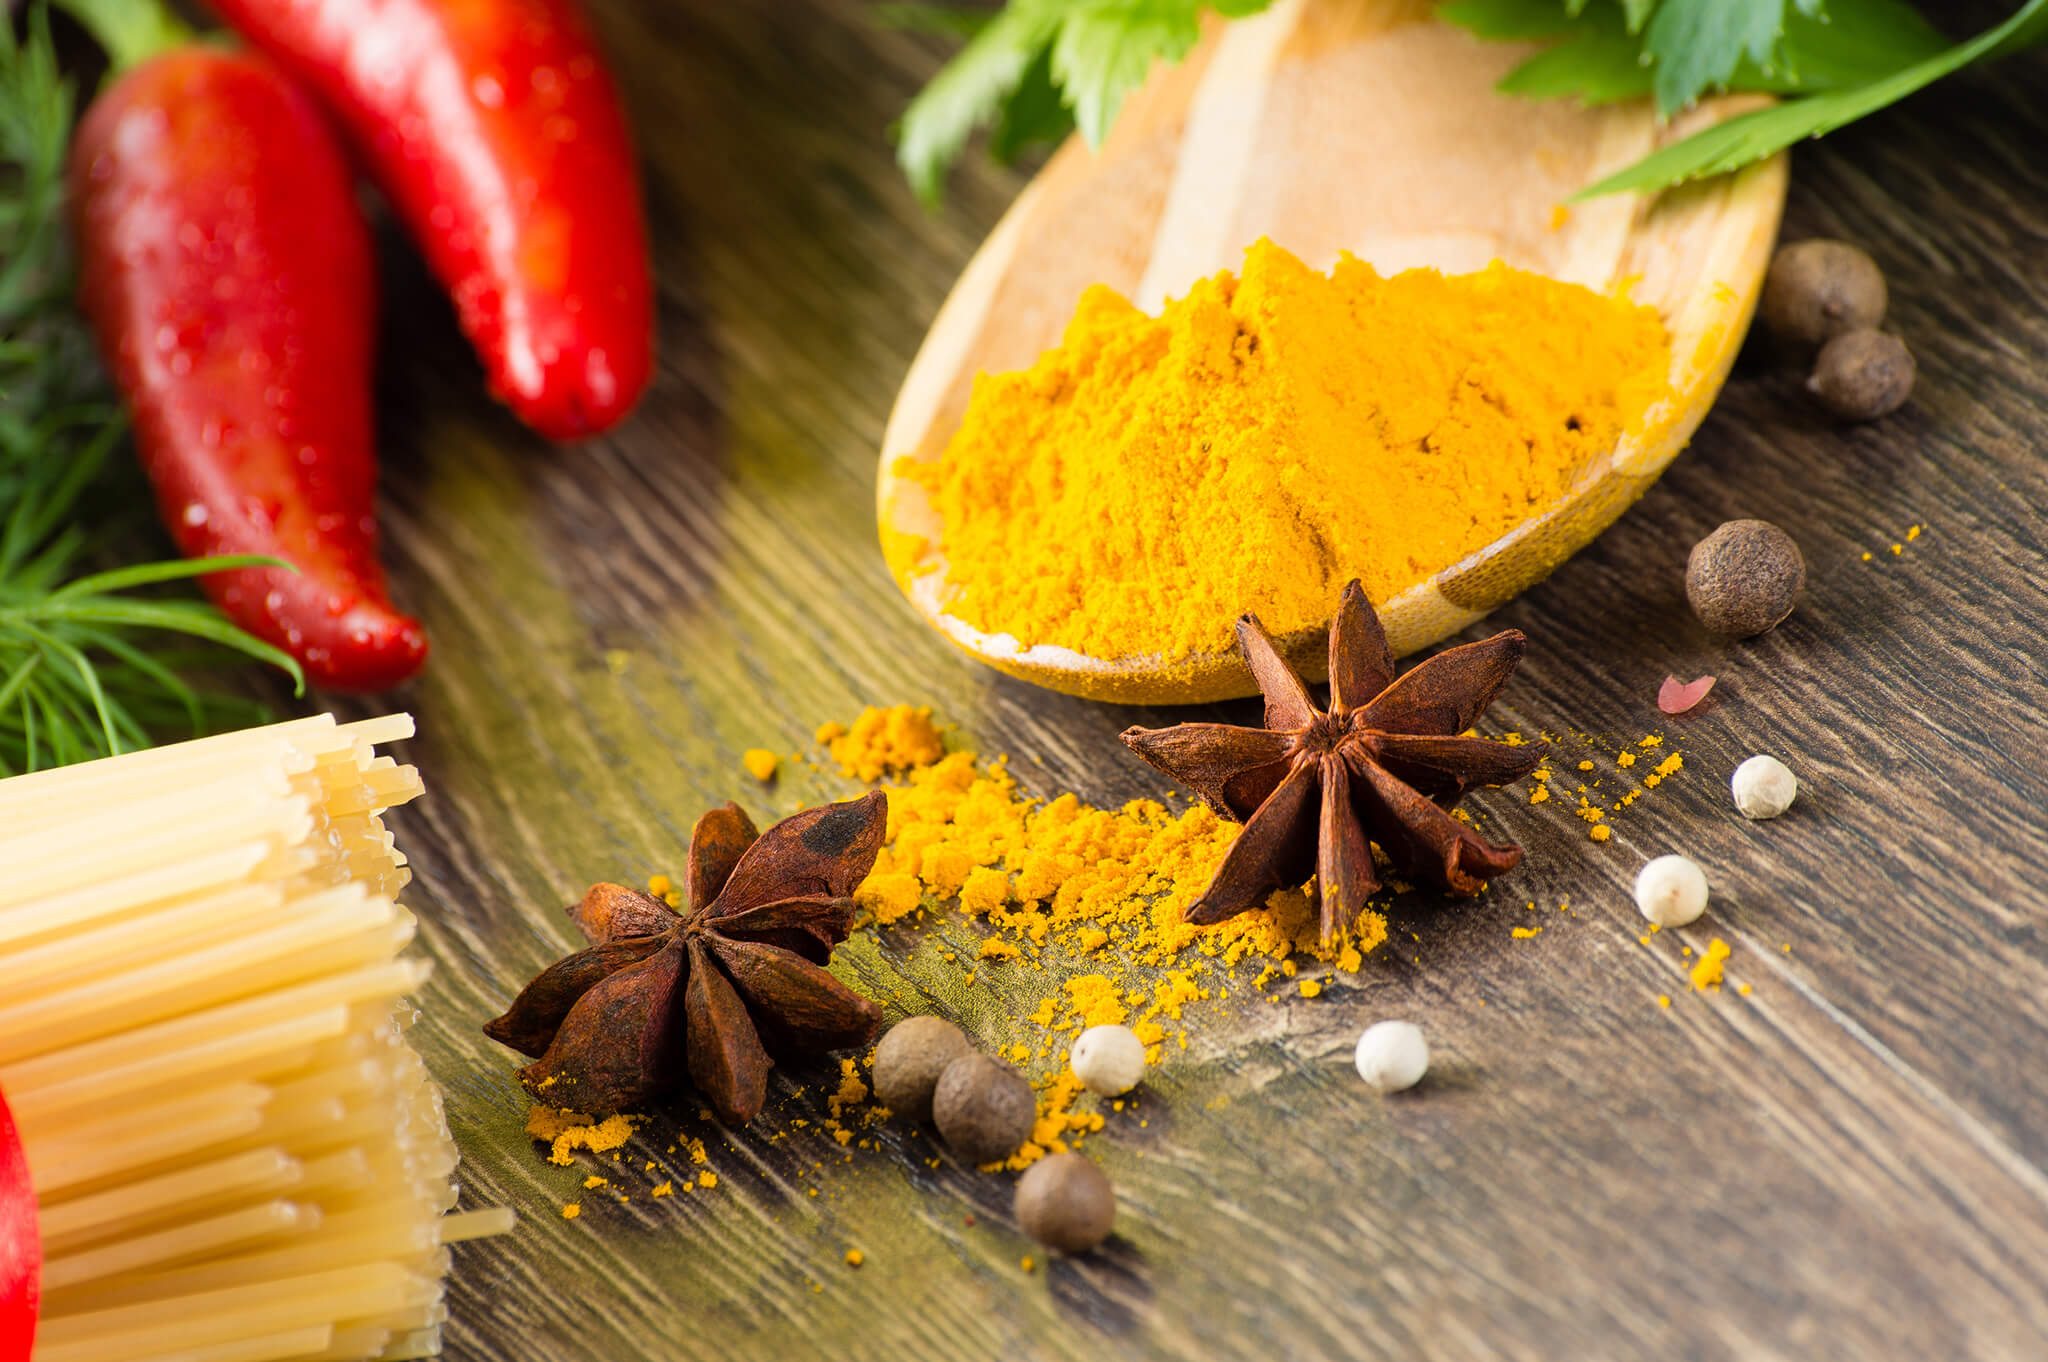 Ten best Eclipse Organics Herbs and Spices You Should Get